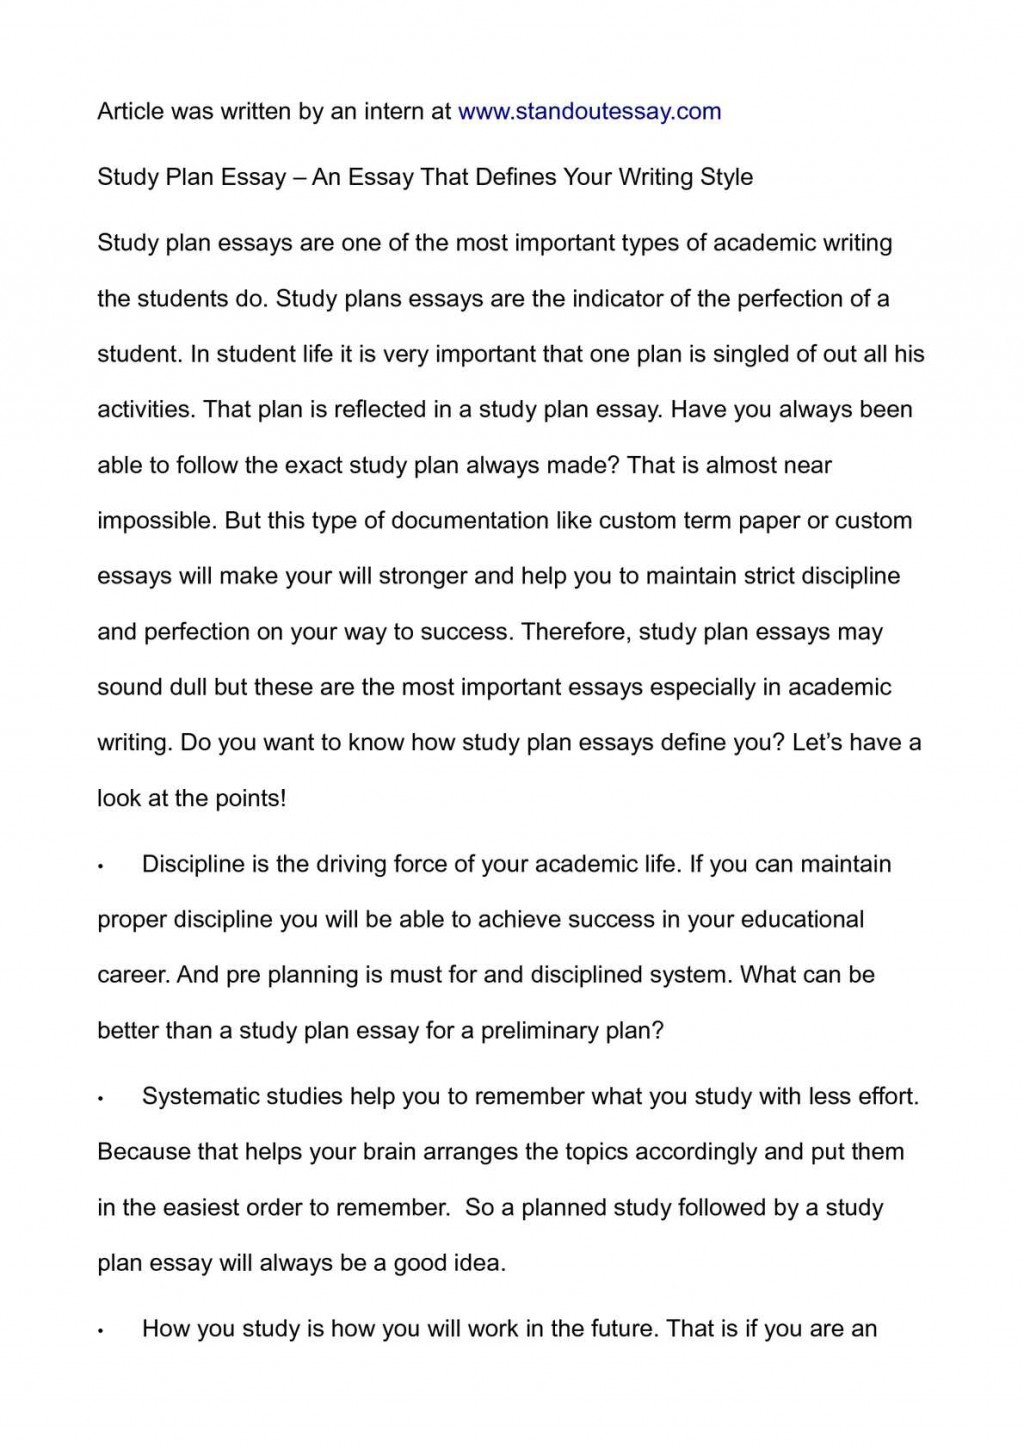 004 Definition Of Success Essay P1 Awesome Outline Large